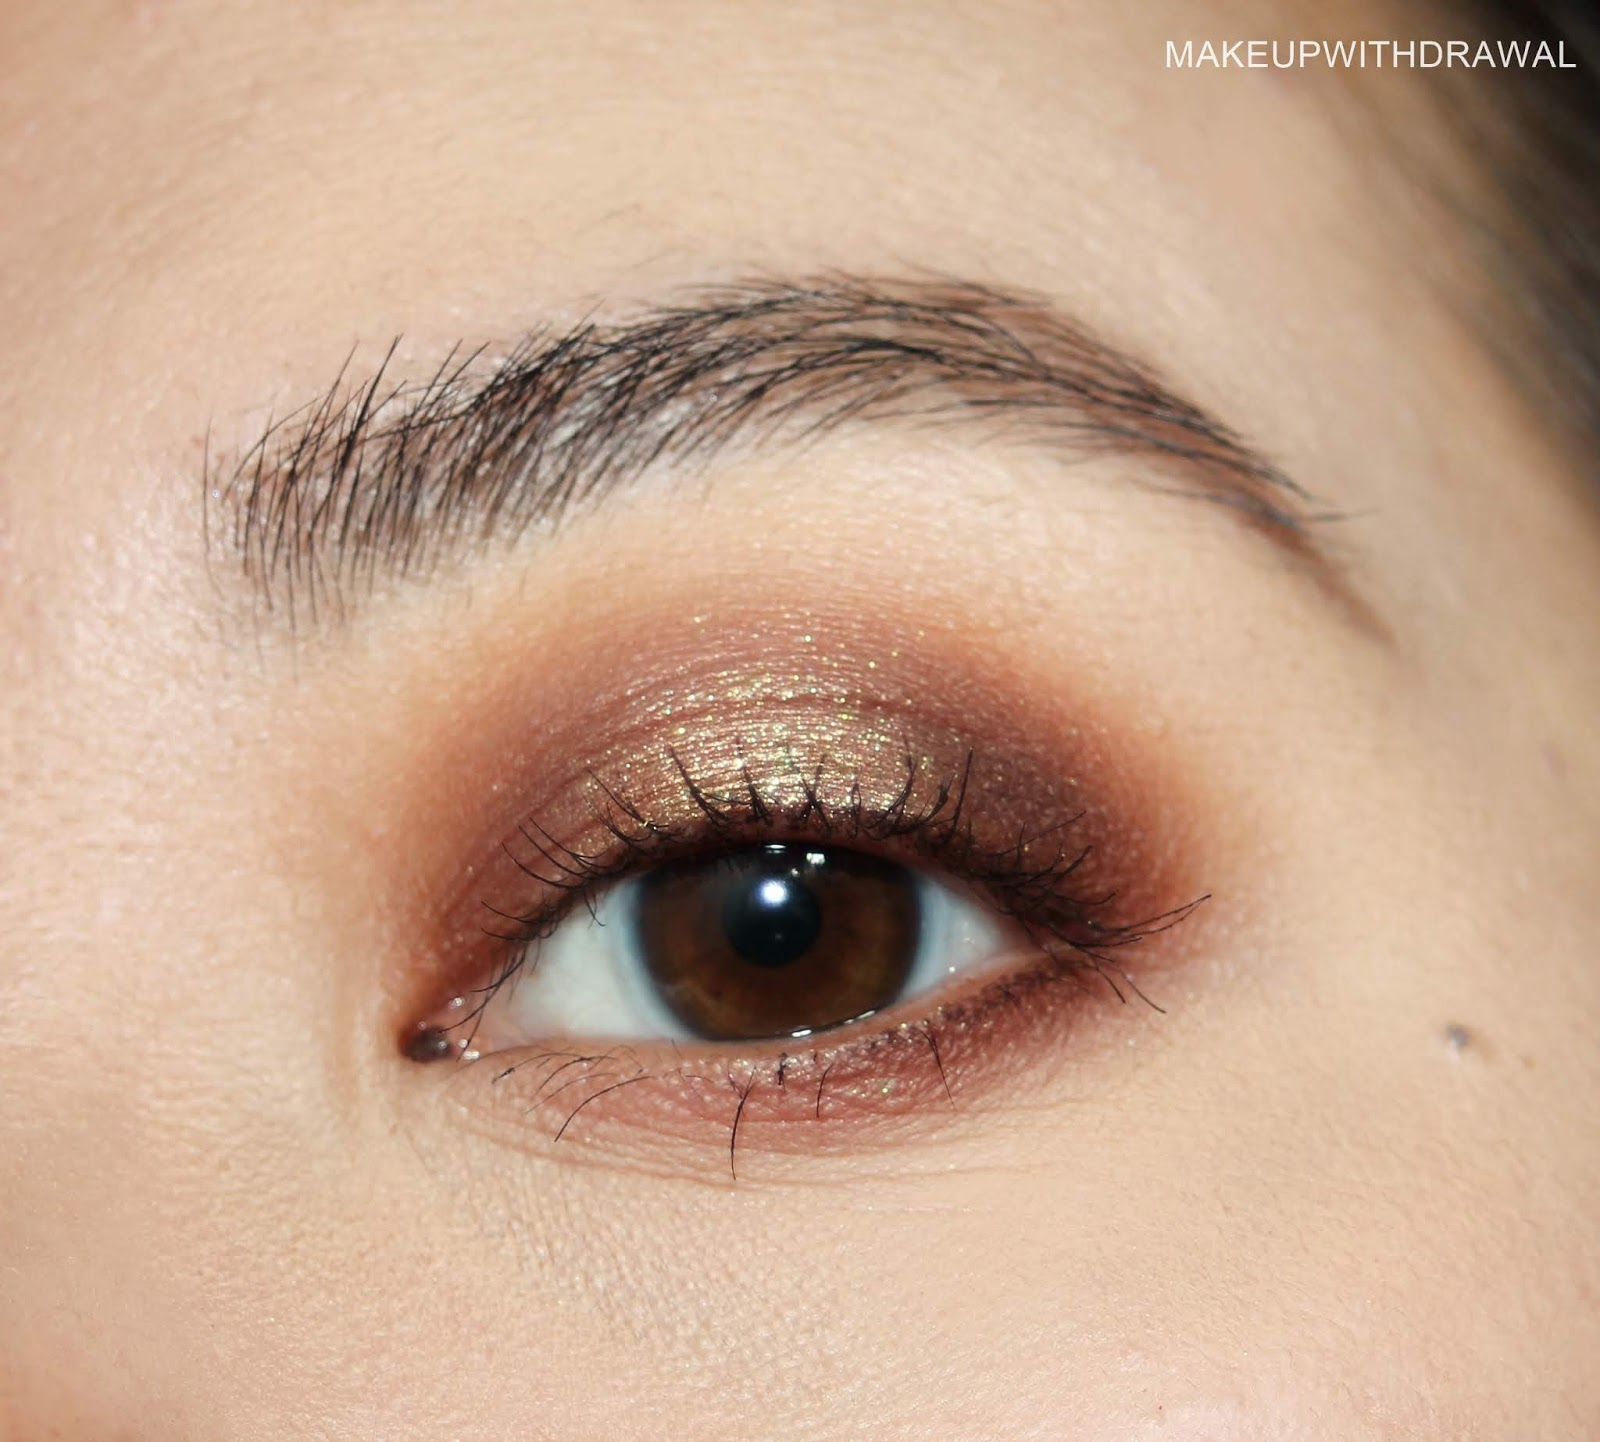 Nude Look Natasha Denona Mini Nude Palette | Makeup Withdrawal